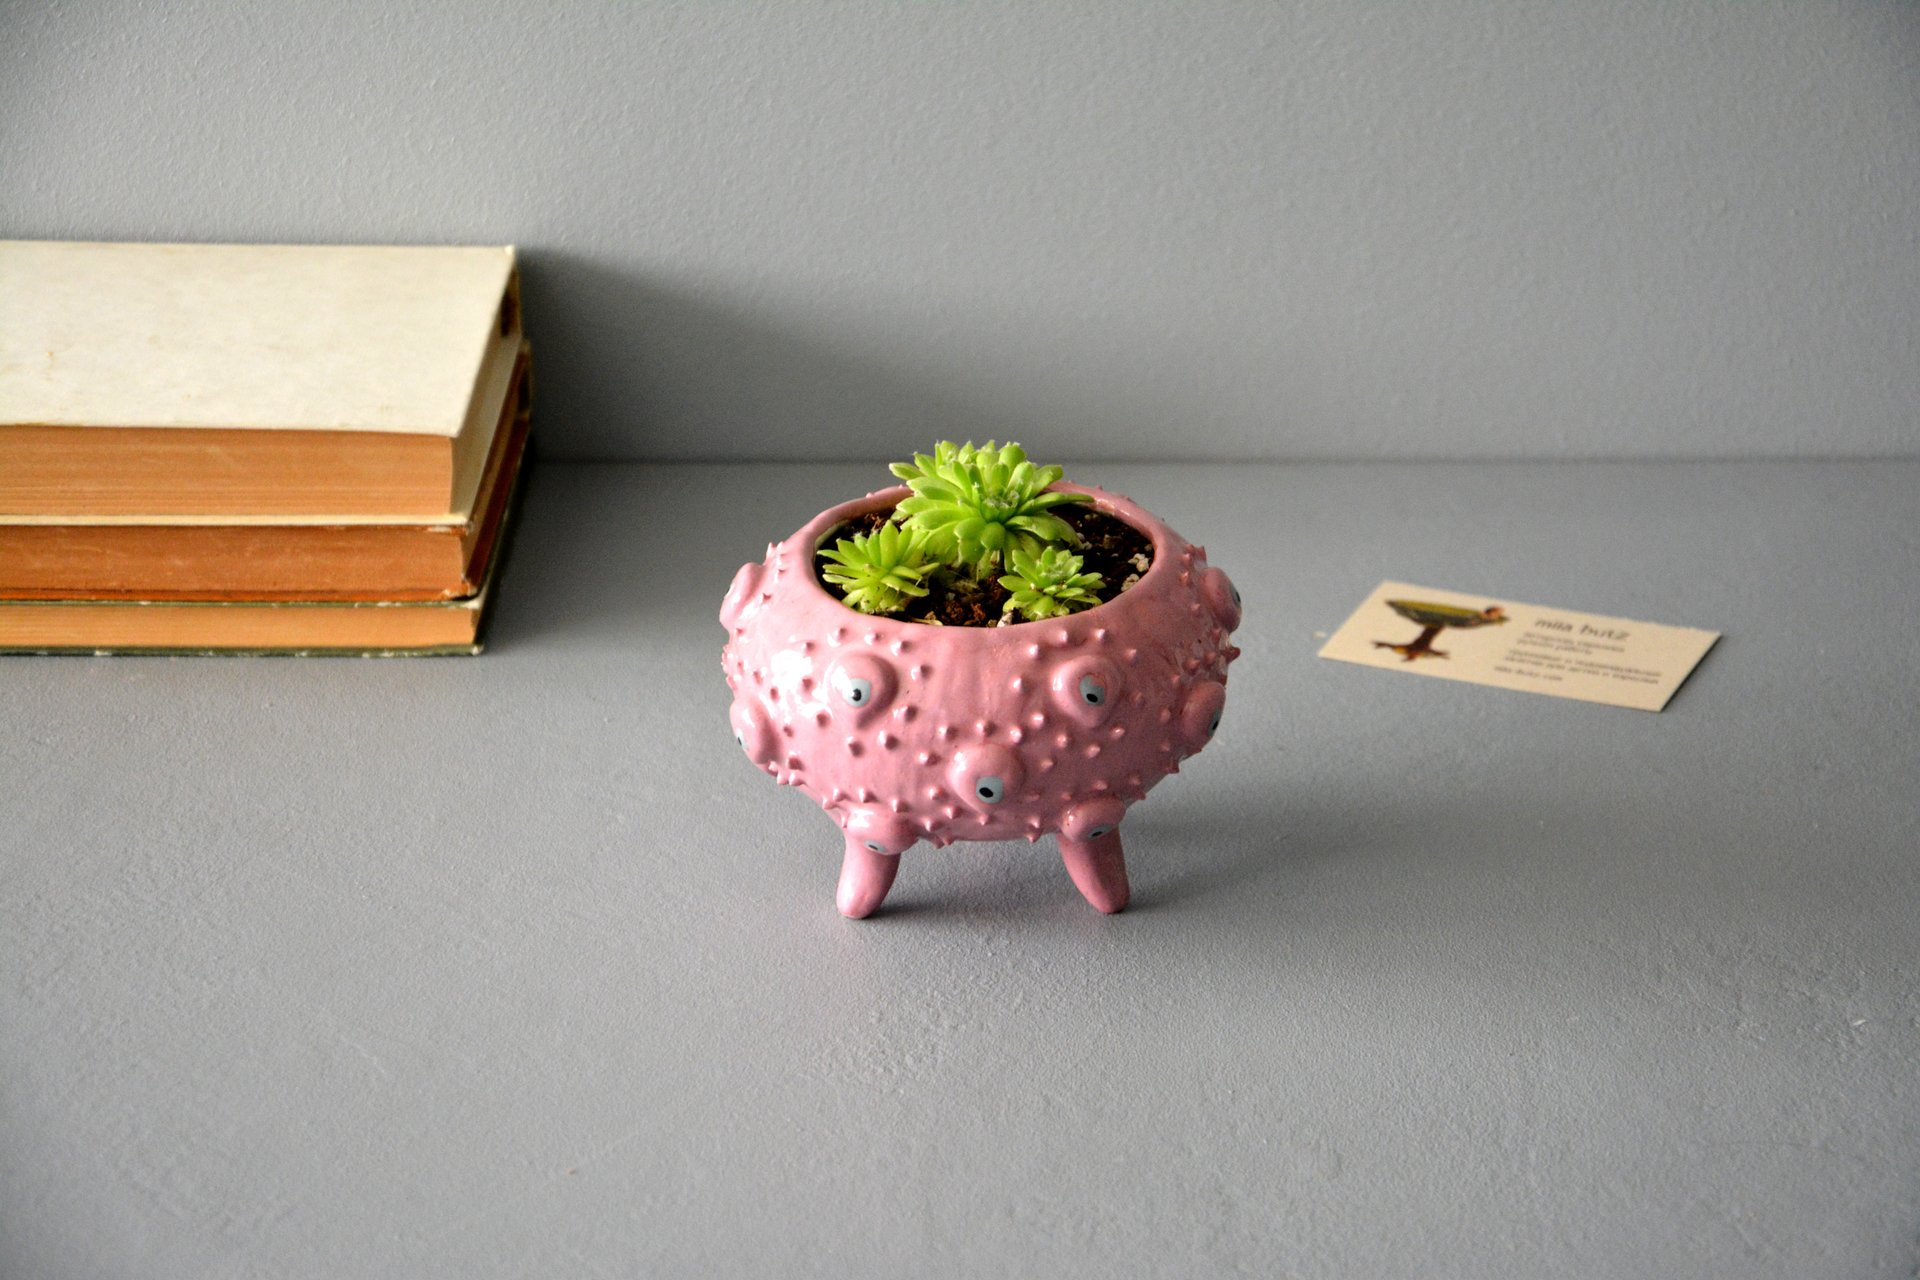 Pink ceramic flower pots for succulents, height - 8,5 cm, diameter (internal) - 8 cm, photo 3 of 4.